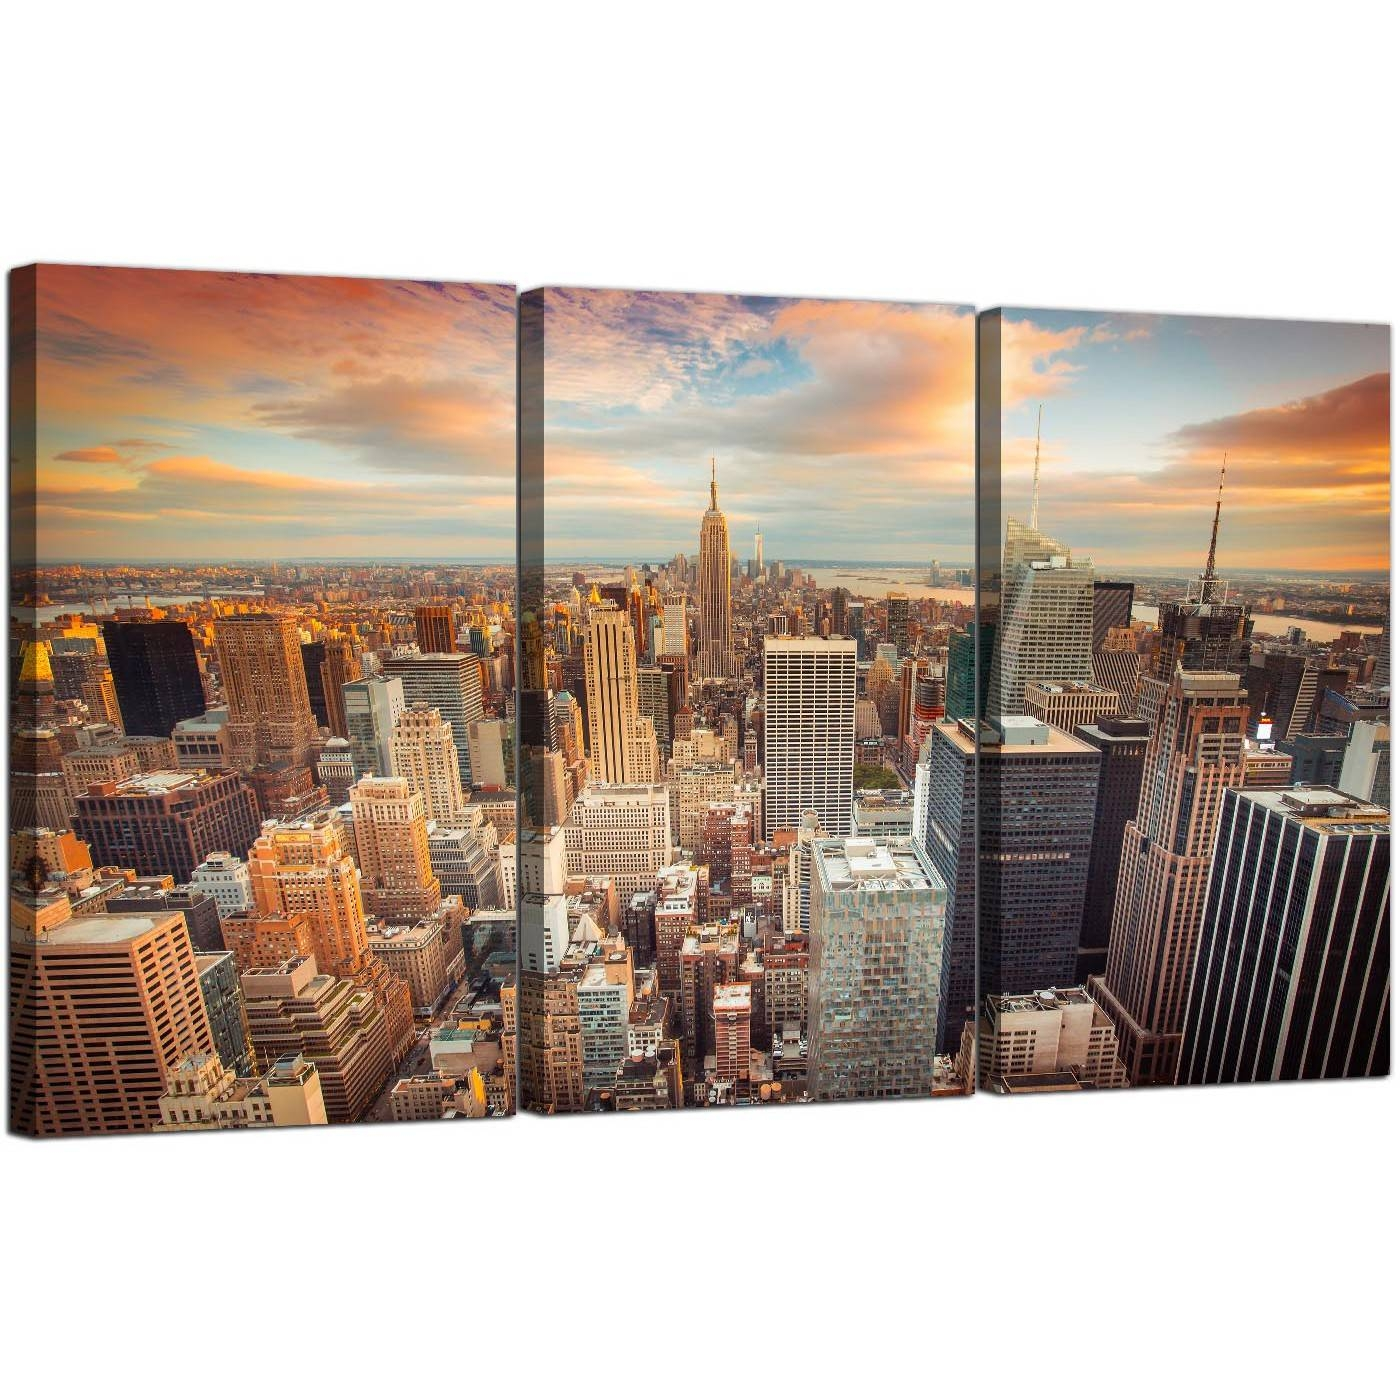 Cheap New York Skyline Canvas Wall Art 3 Panel For Your Living Room With Regard To Recent New York City Canvas Wall Art (View 18 of 20)